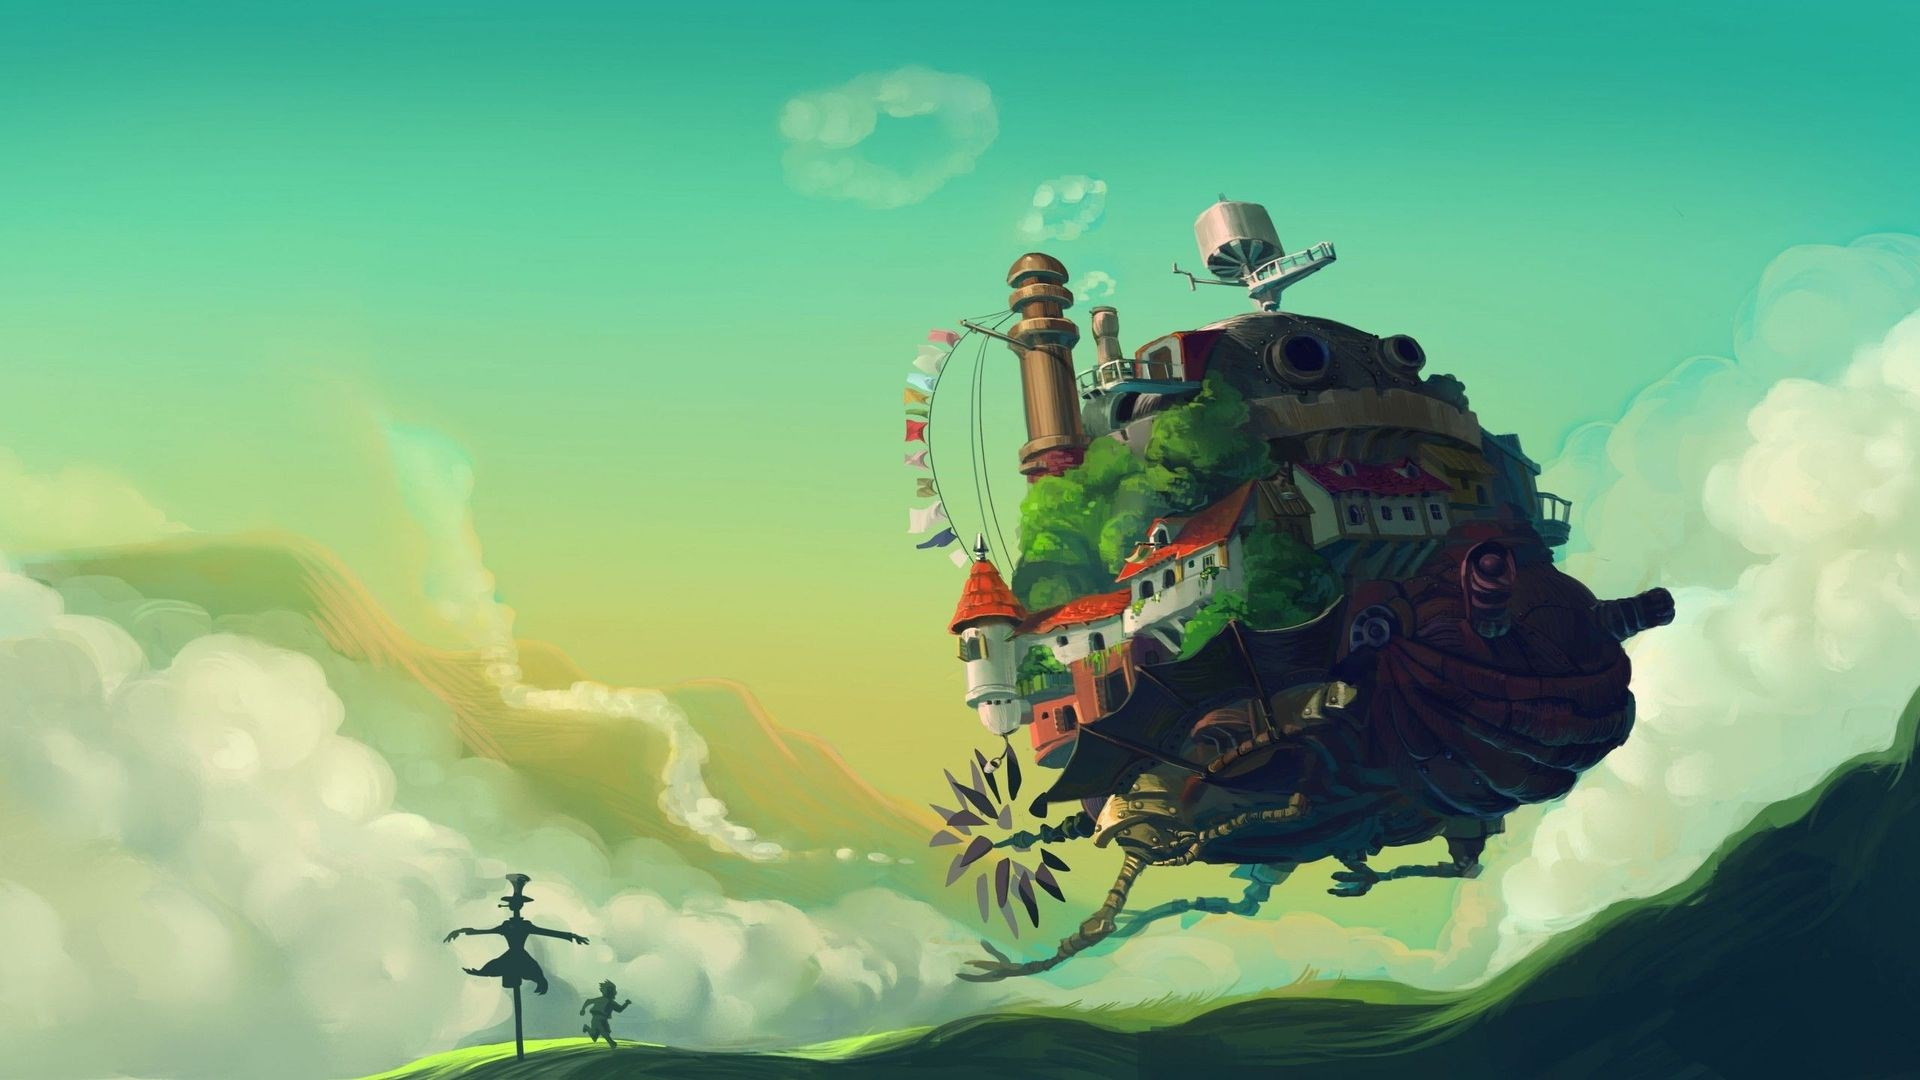 howls-moving-castle-anime-hd-1920x1080-wallpaper-wpc9006224